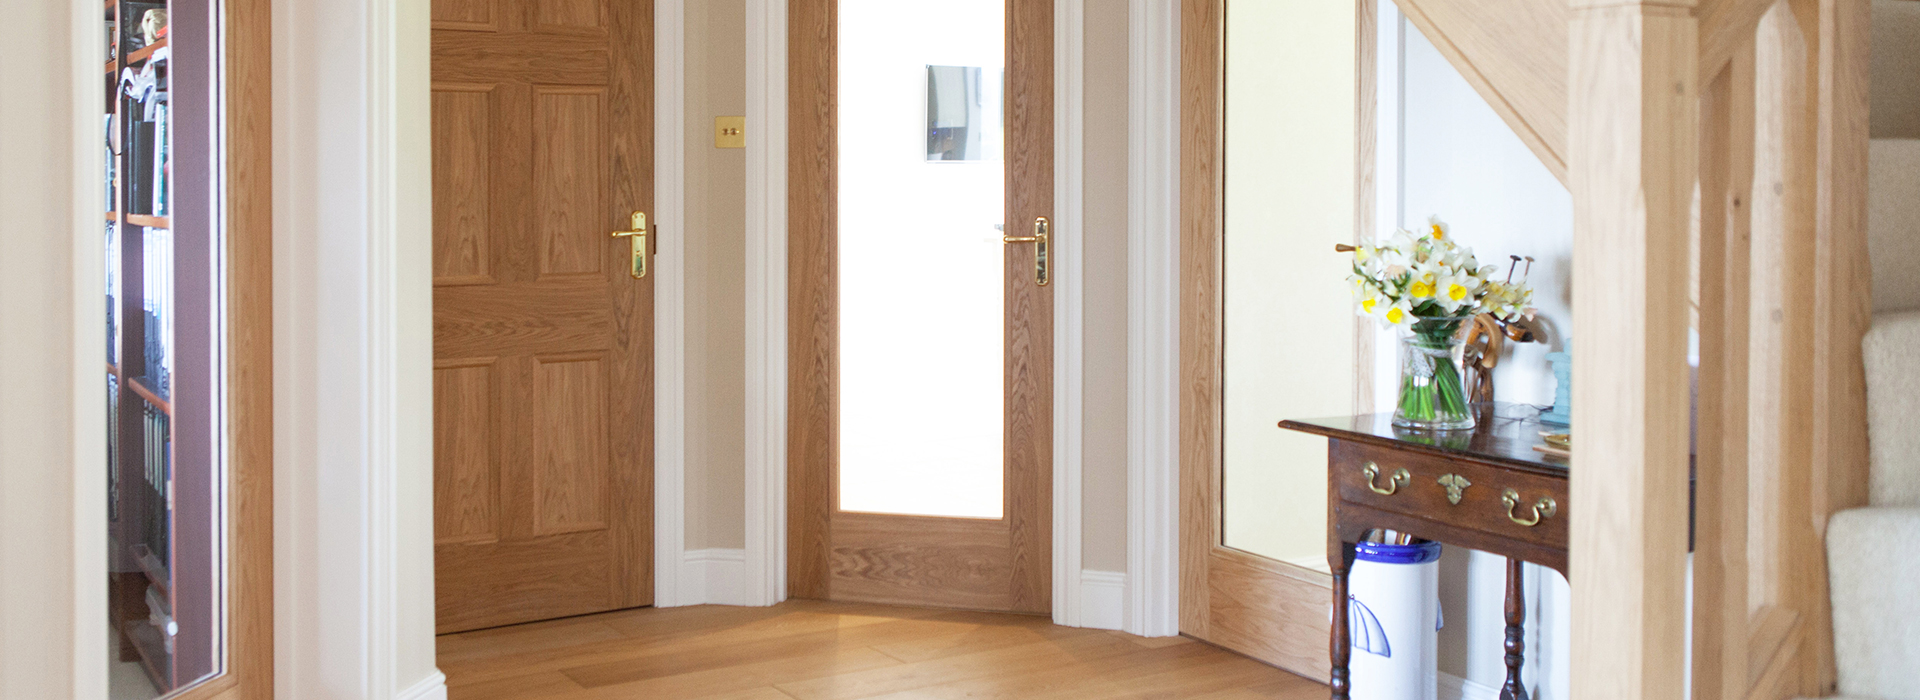 Oak doors in entrance hall